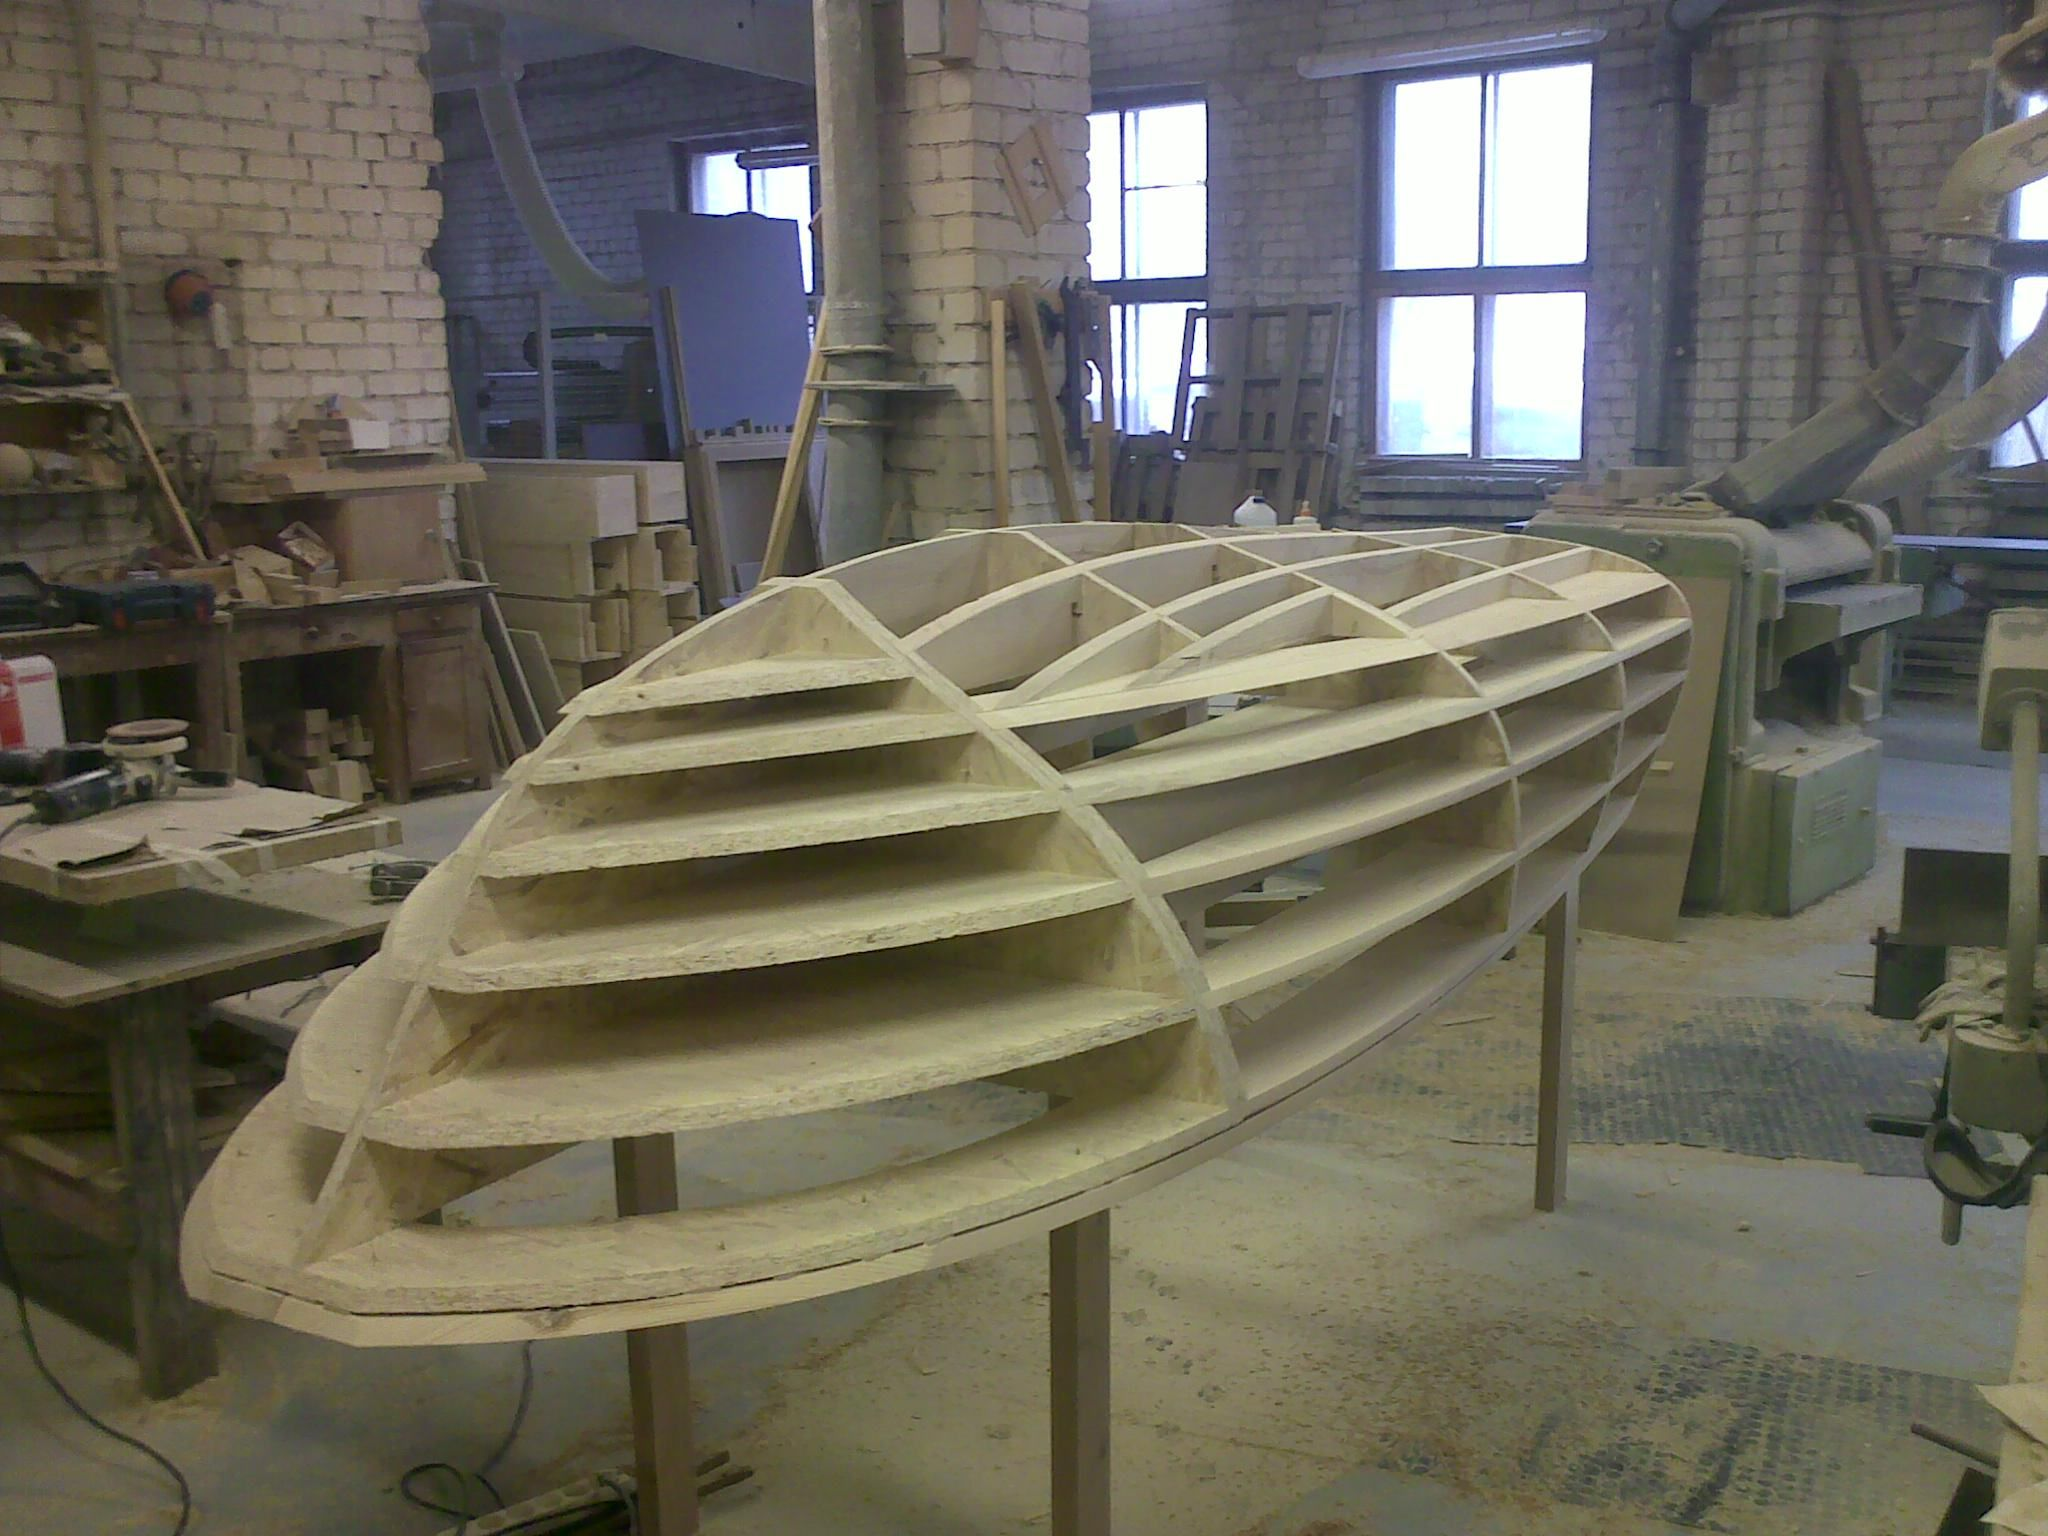 small wooden sailboats for sale - Google Search | Sailboats ...